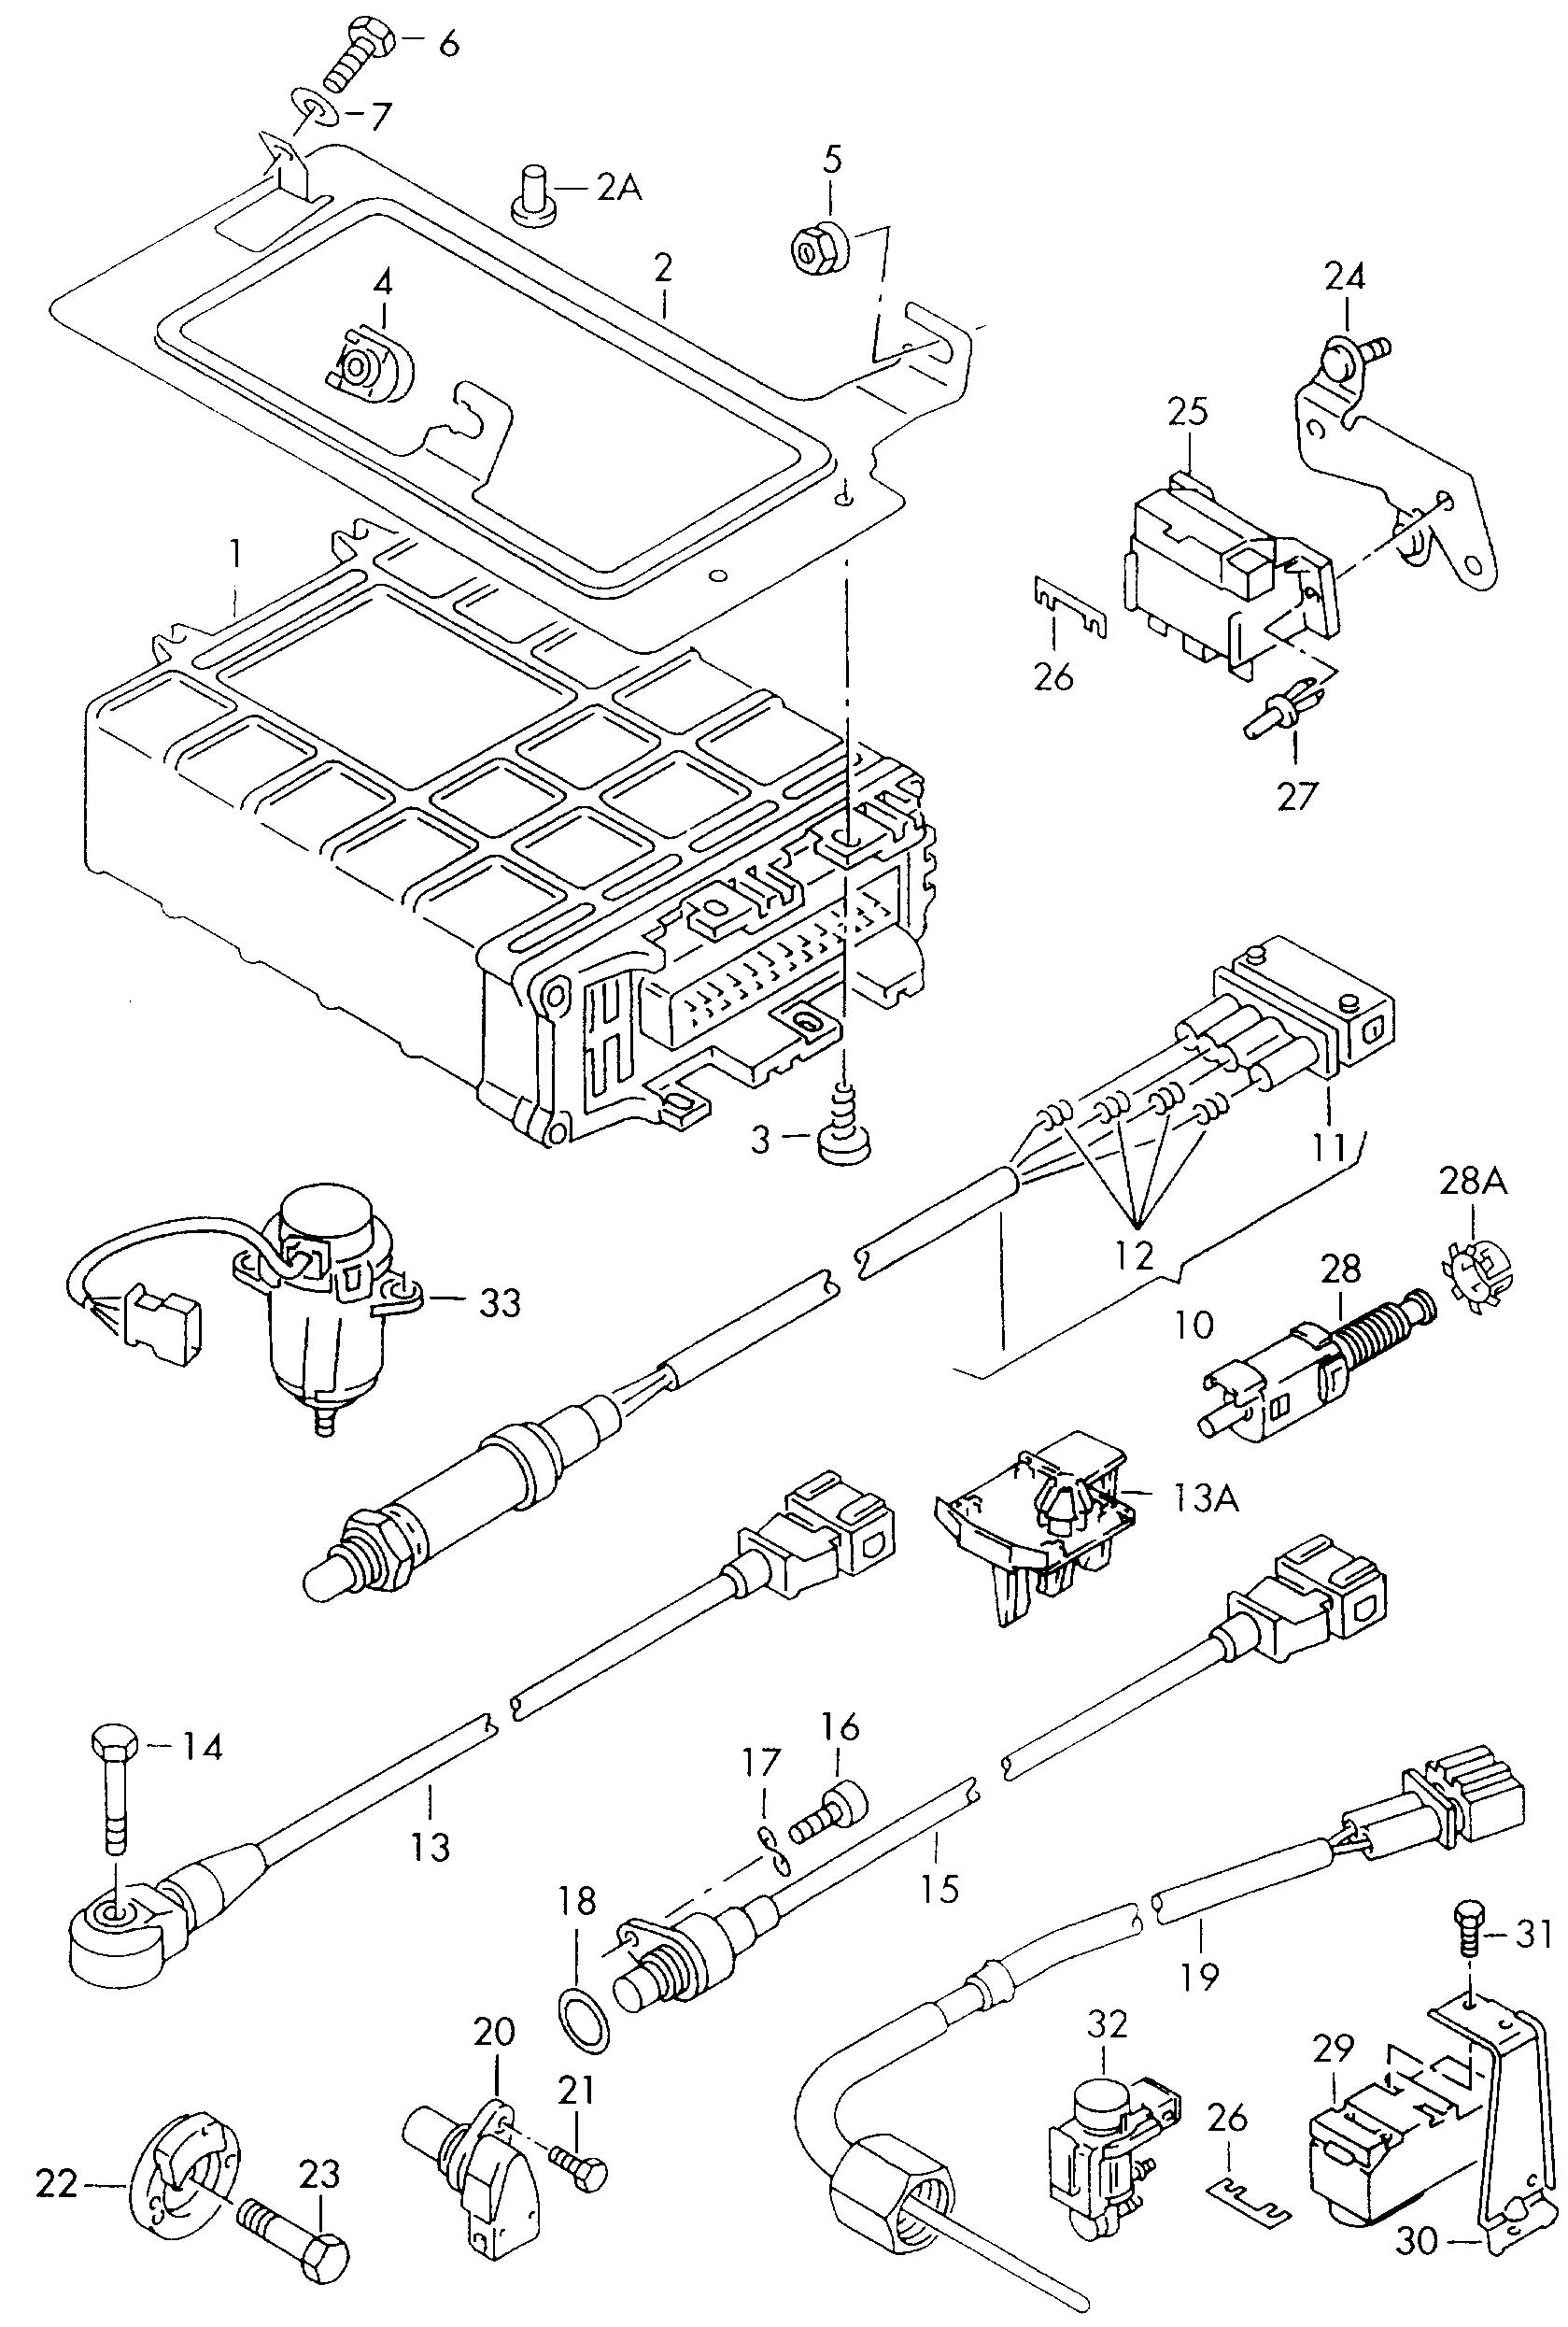 Volkswagen Also Use Knock Sensor With Harness